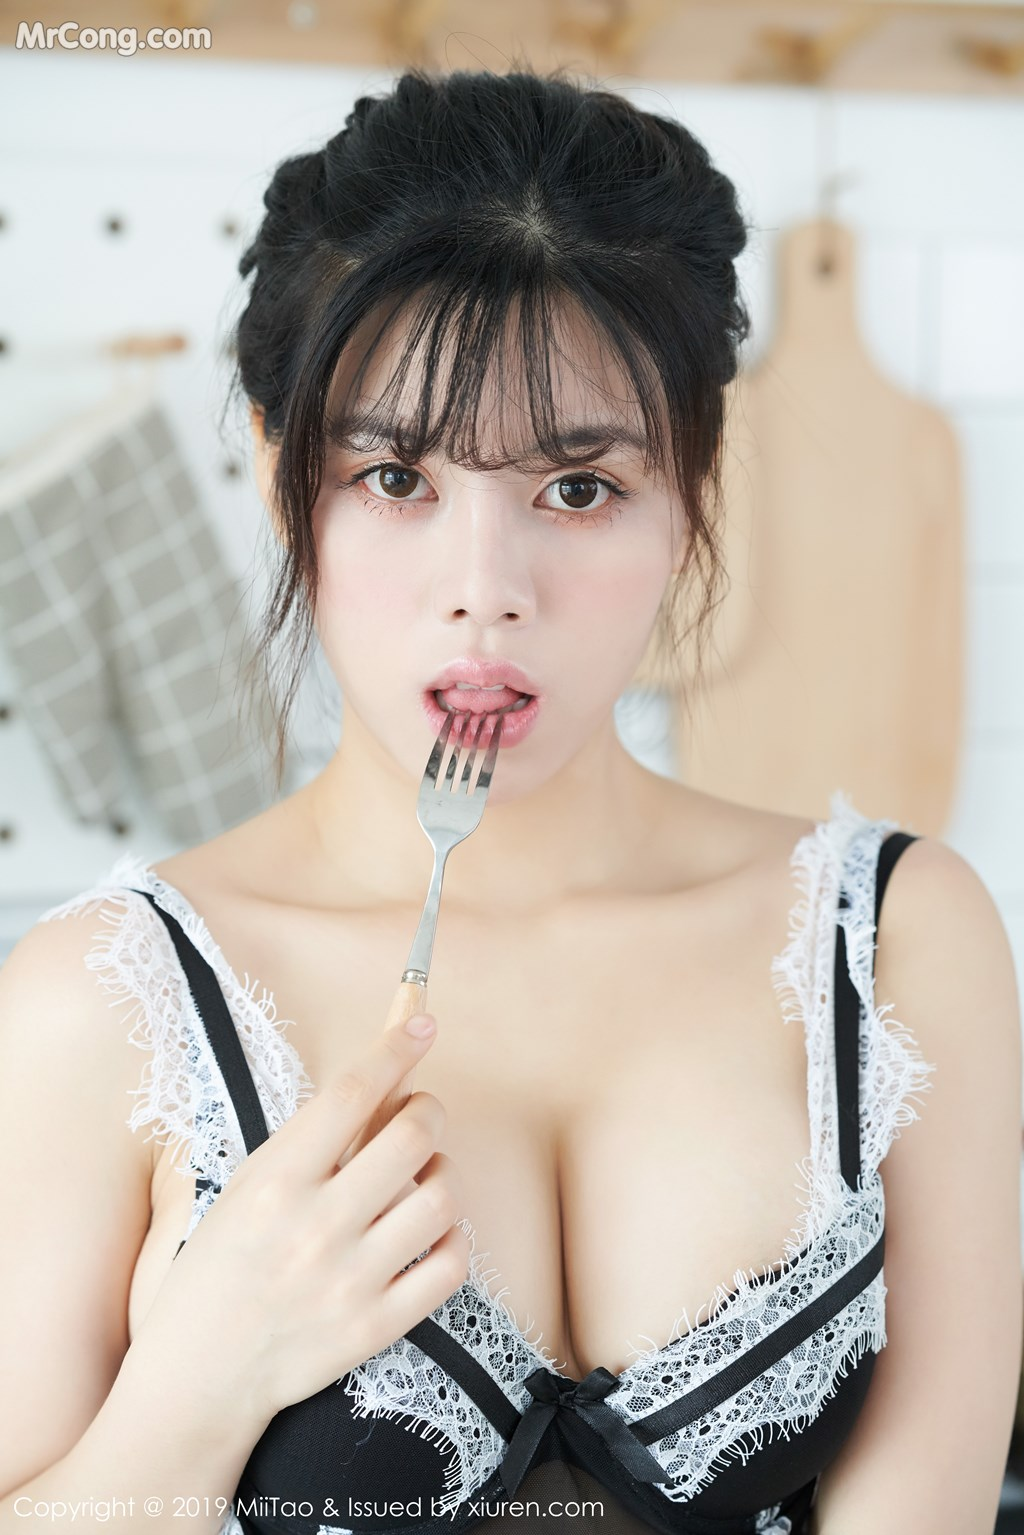 Image MiiTao-Vol.128-MrCong.com-004 in post MiiTao Vol.128: 梦恬 (52 ảnh)